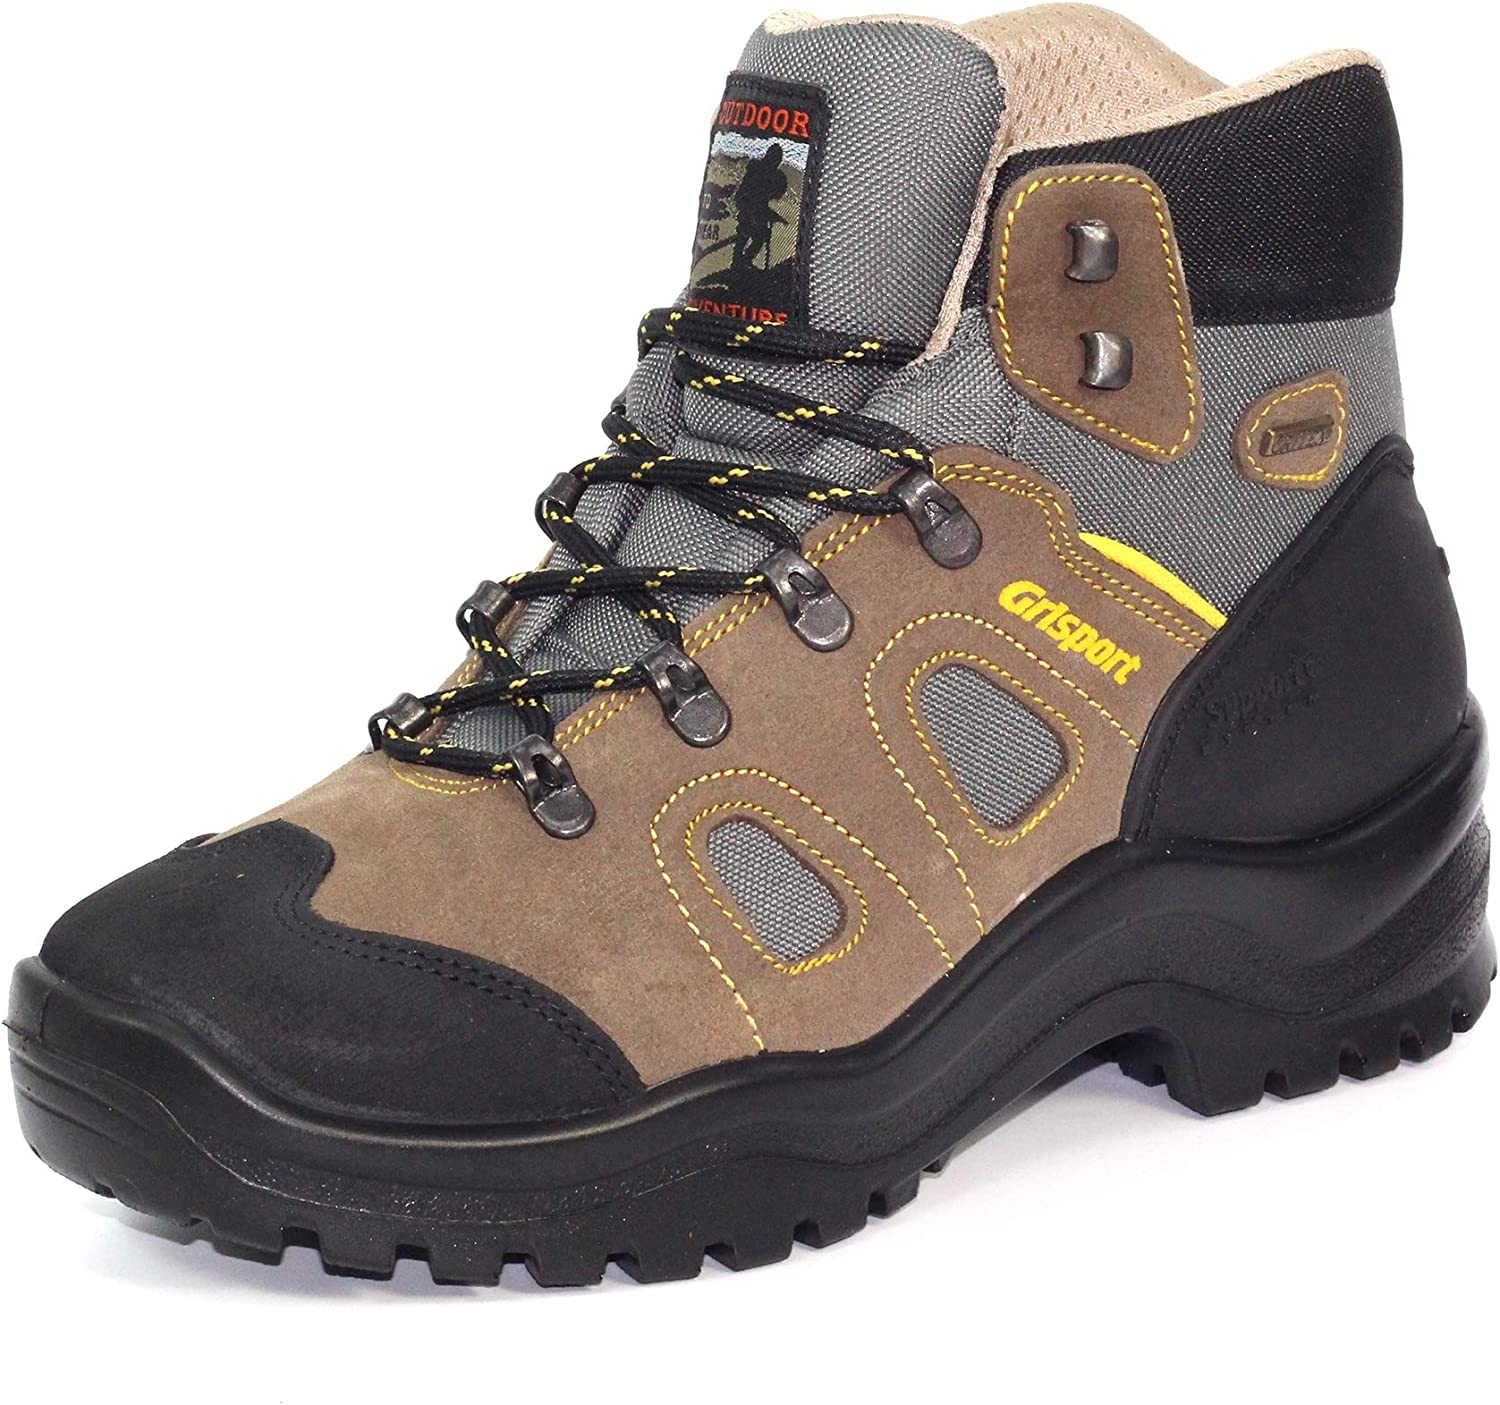 greyport Unisex Cranbrook Hiking Boot